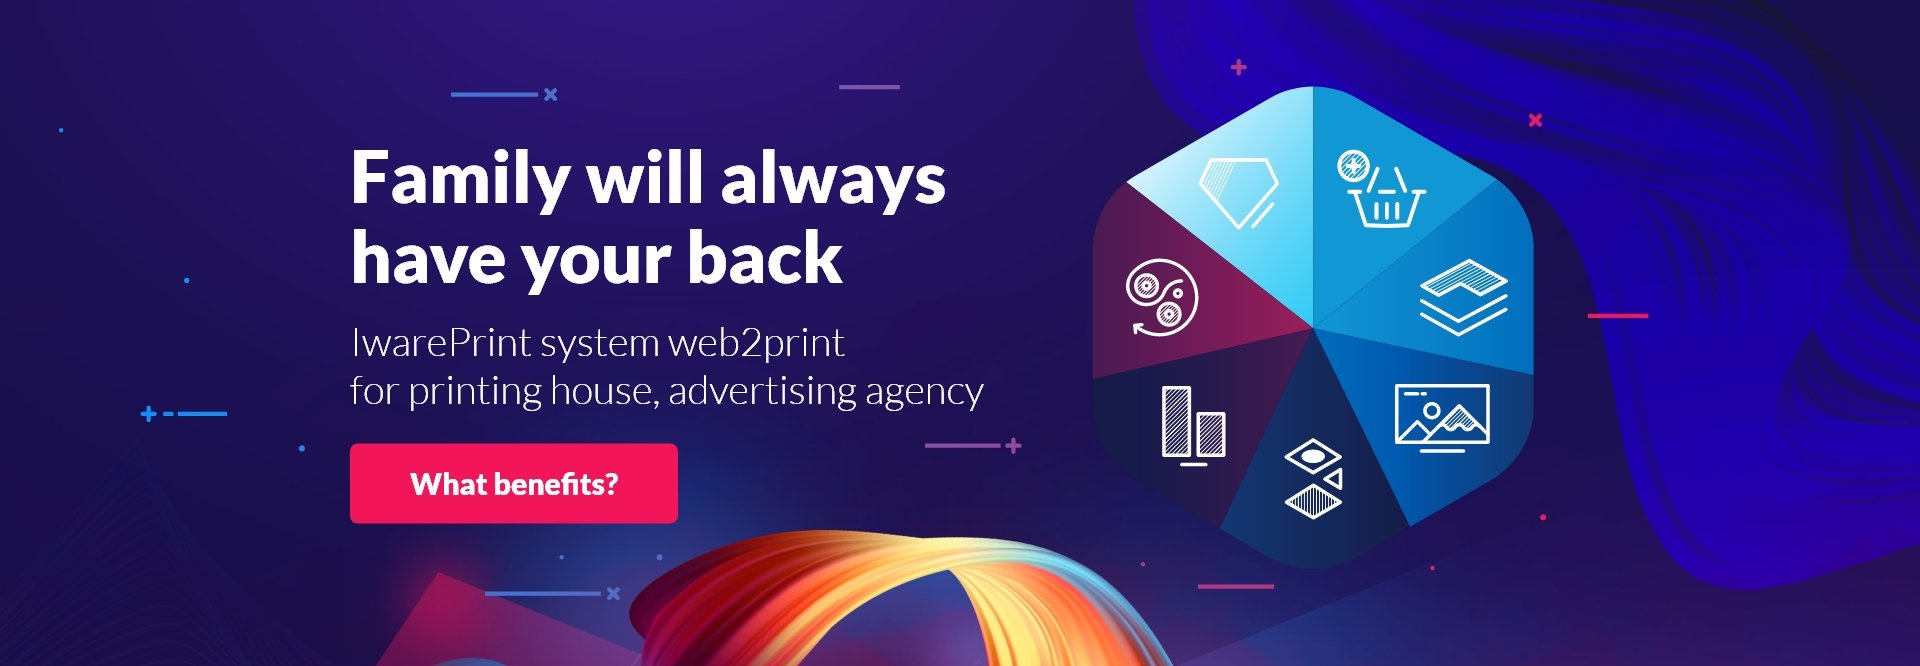 Family will always have your back - IwarePrint top Banner image